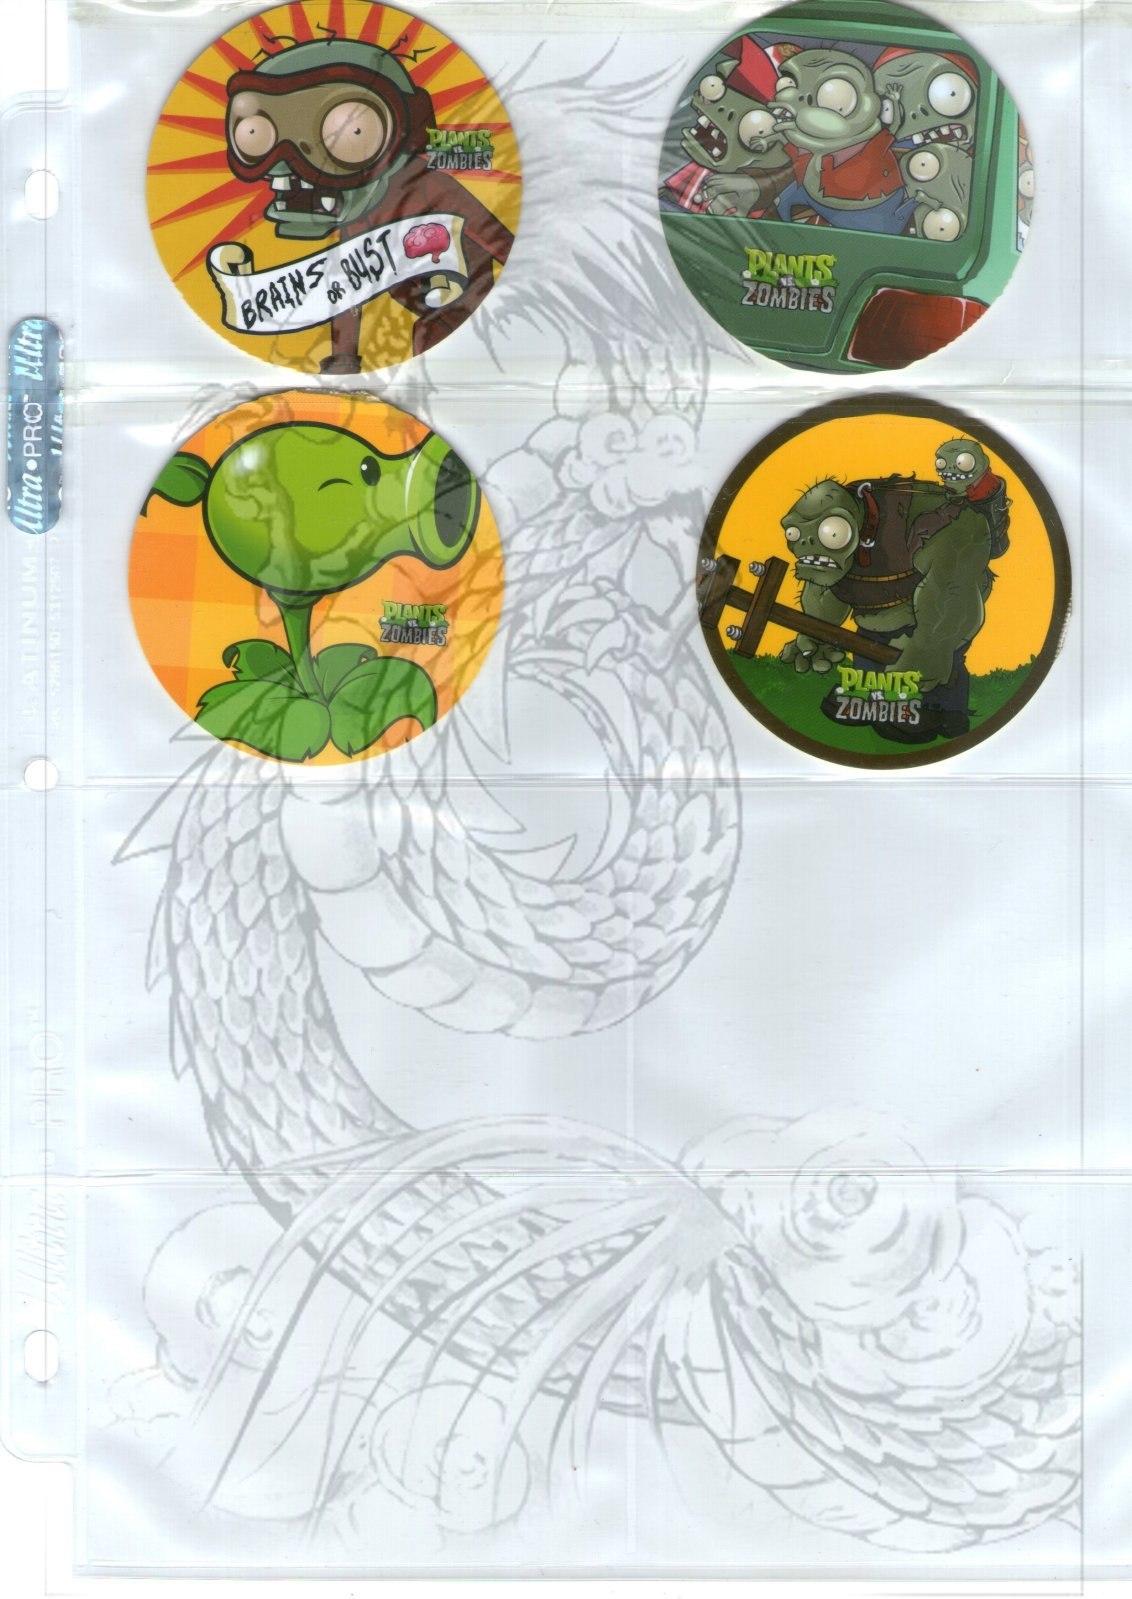 Tazos Plantas Vs Zombies de SABRITAS 2yv2m1j